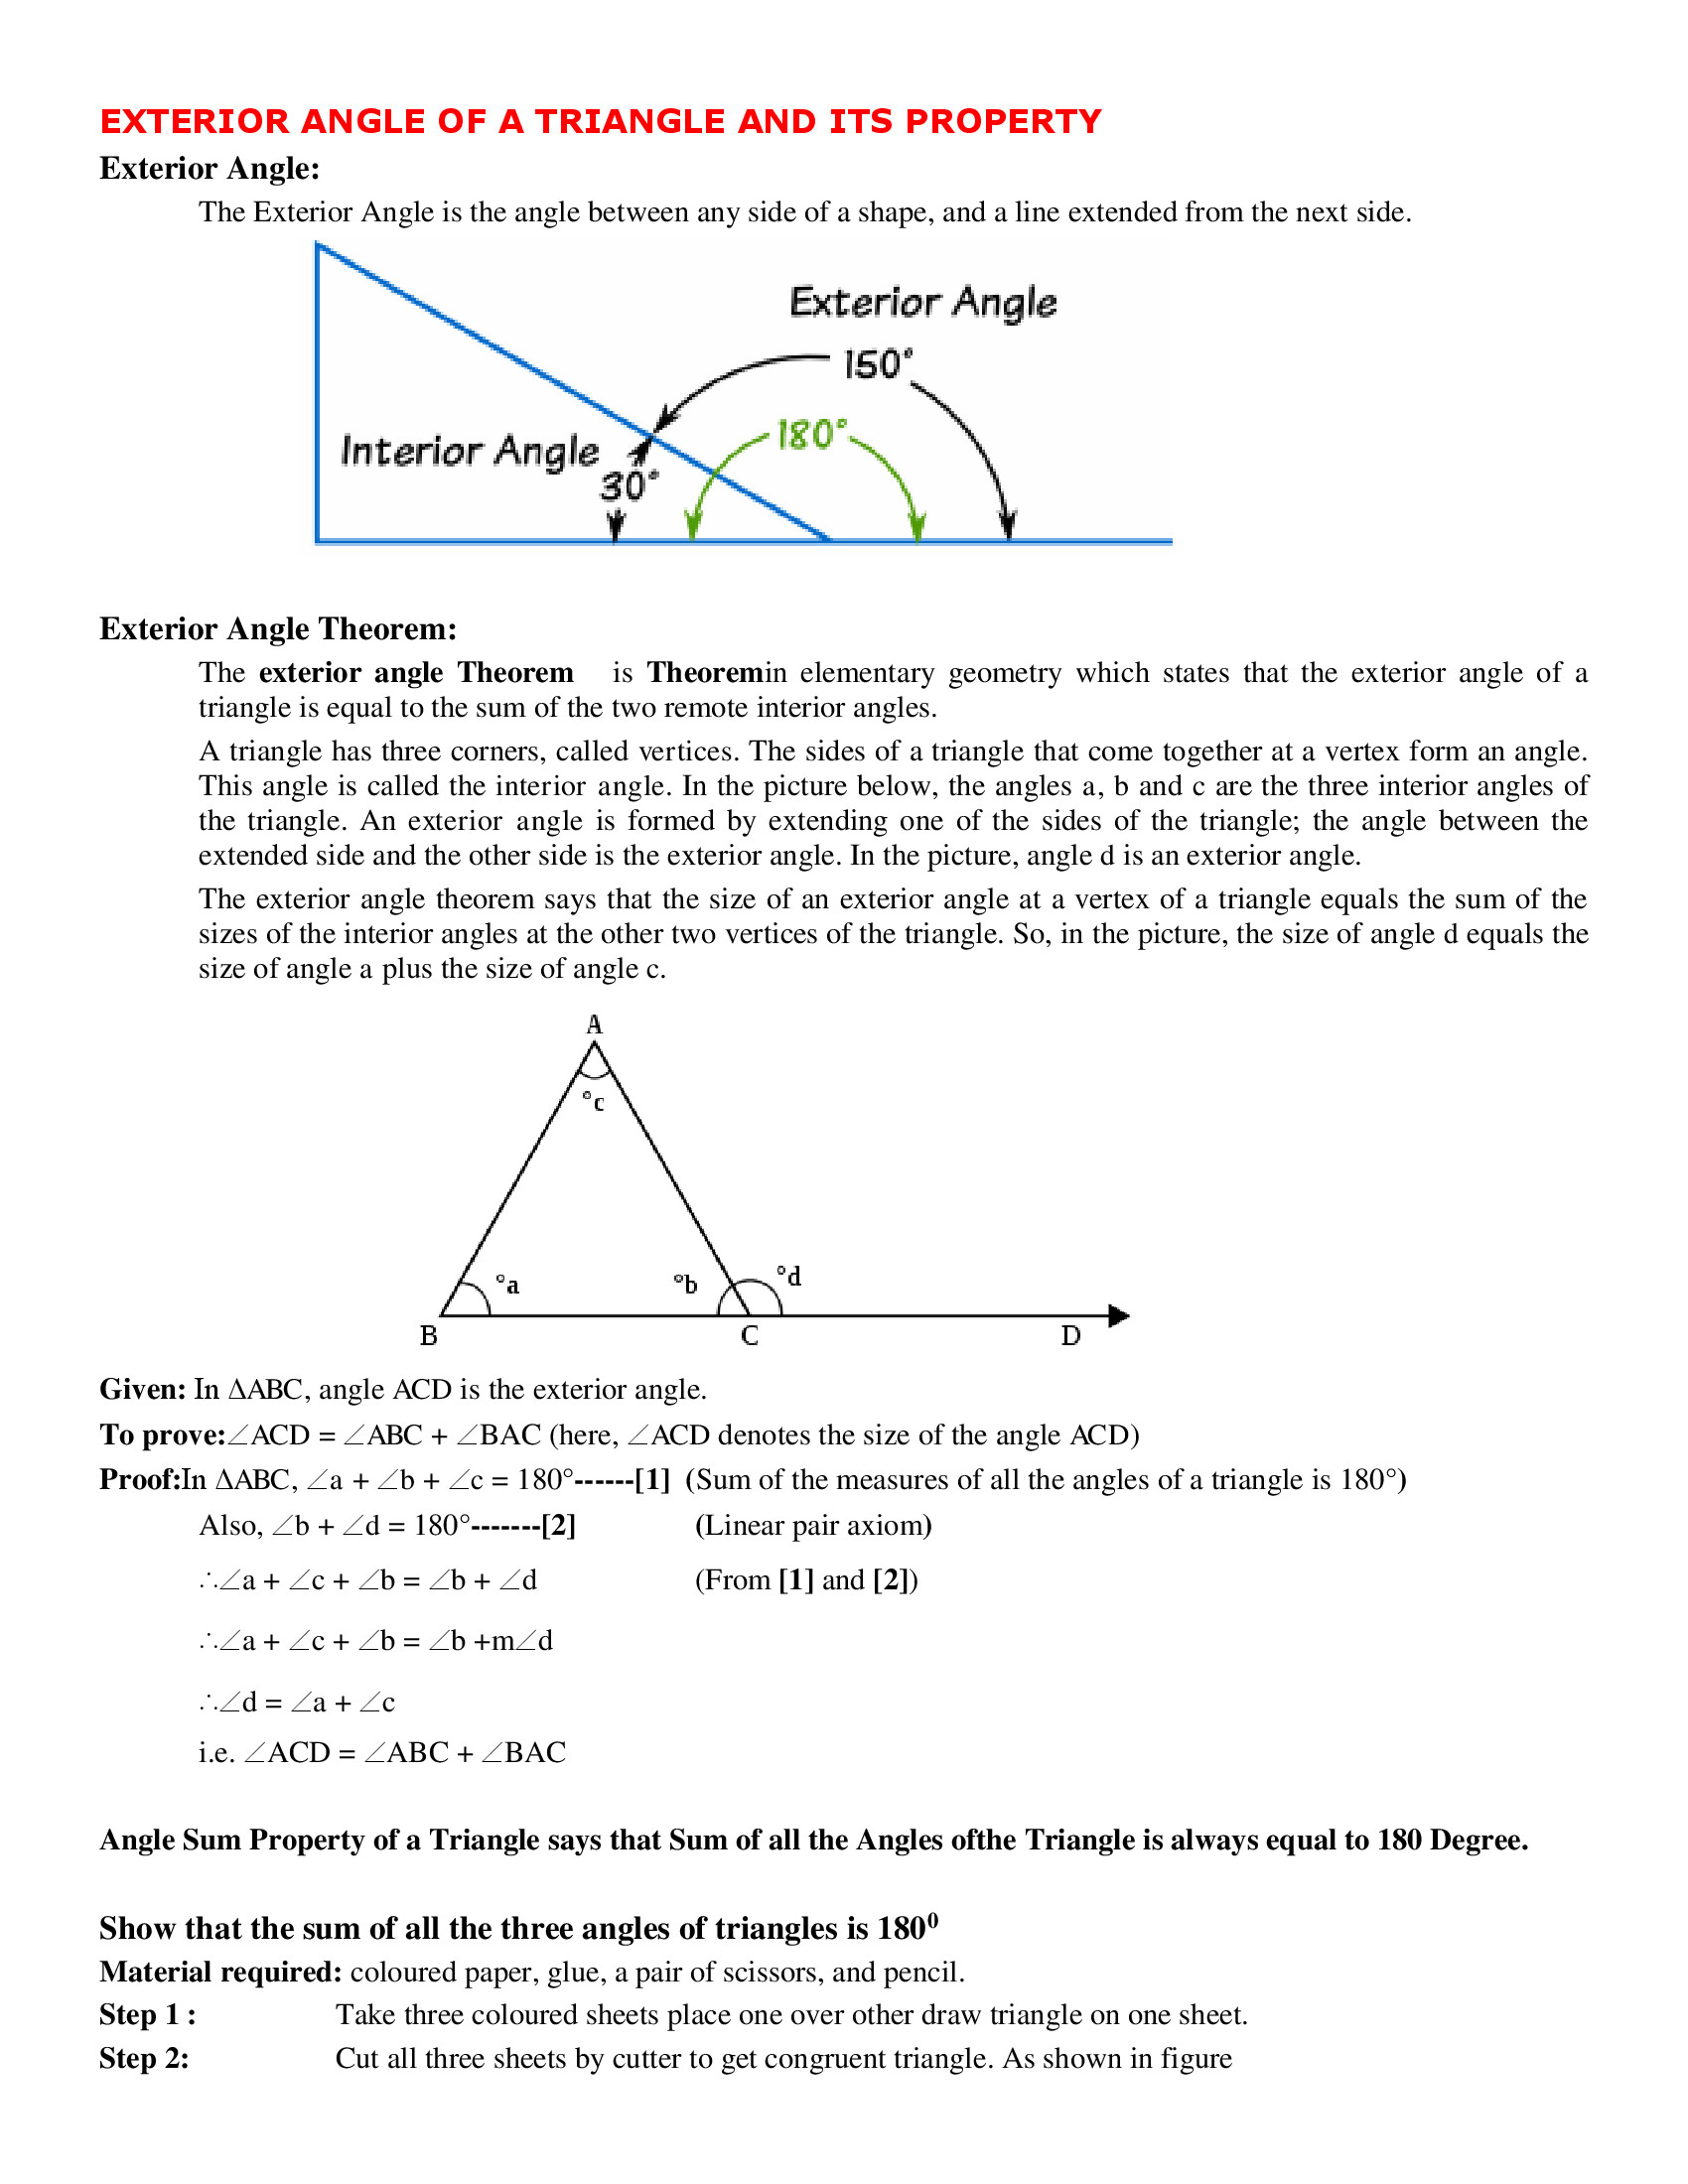 Triangle Angle Sum Worksheet Exterior Angle Of A Triangle and Its Property Worksheet